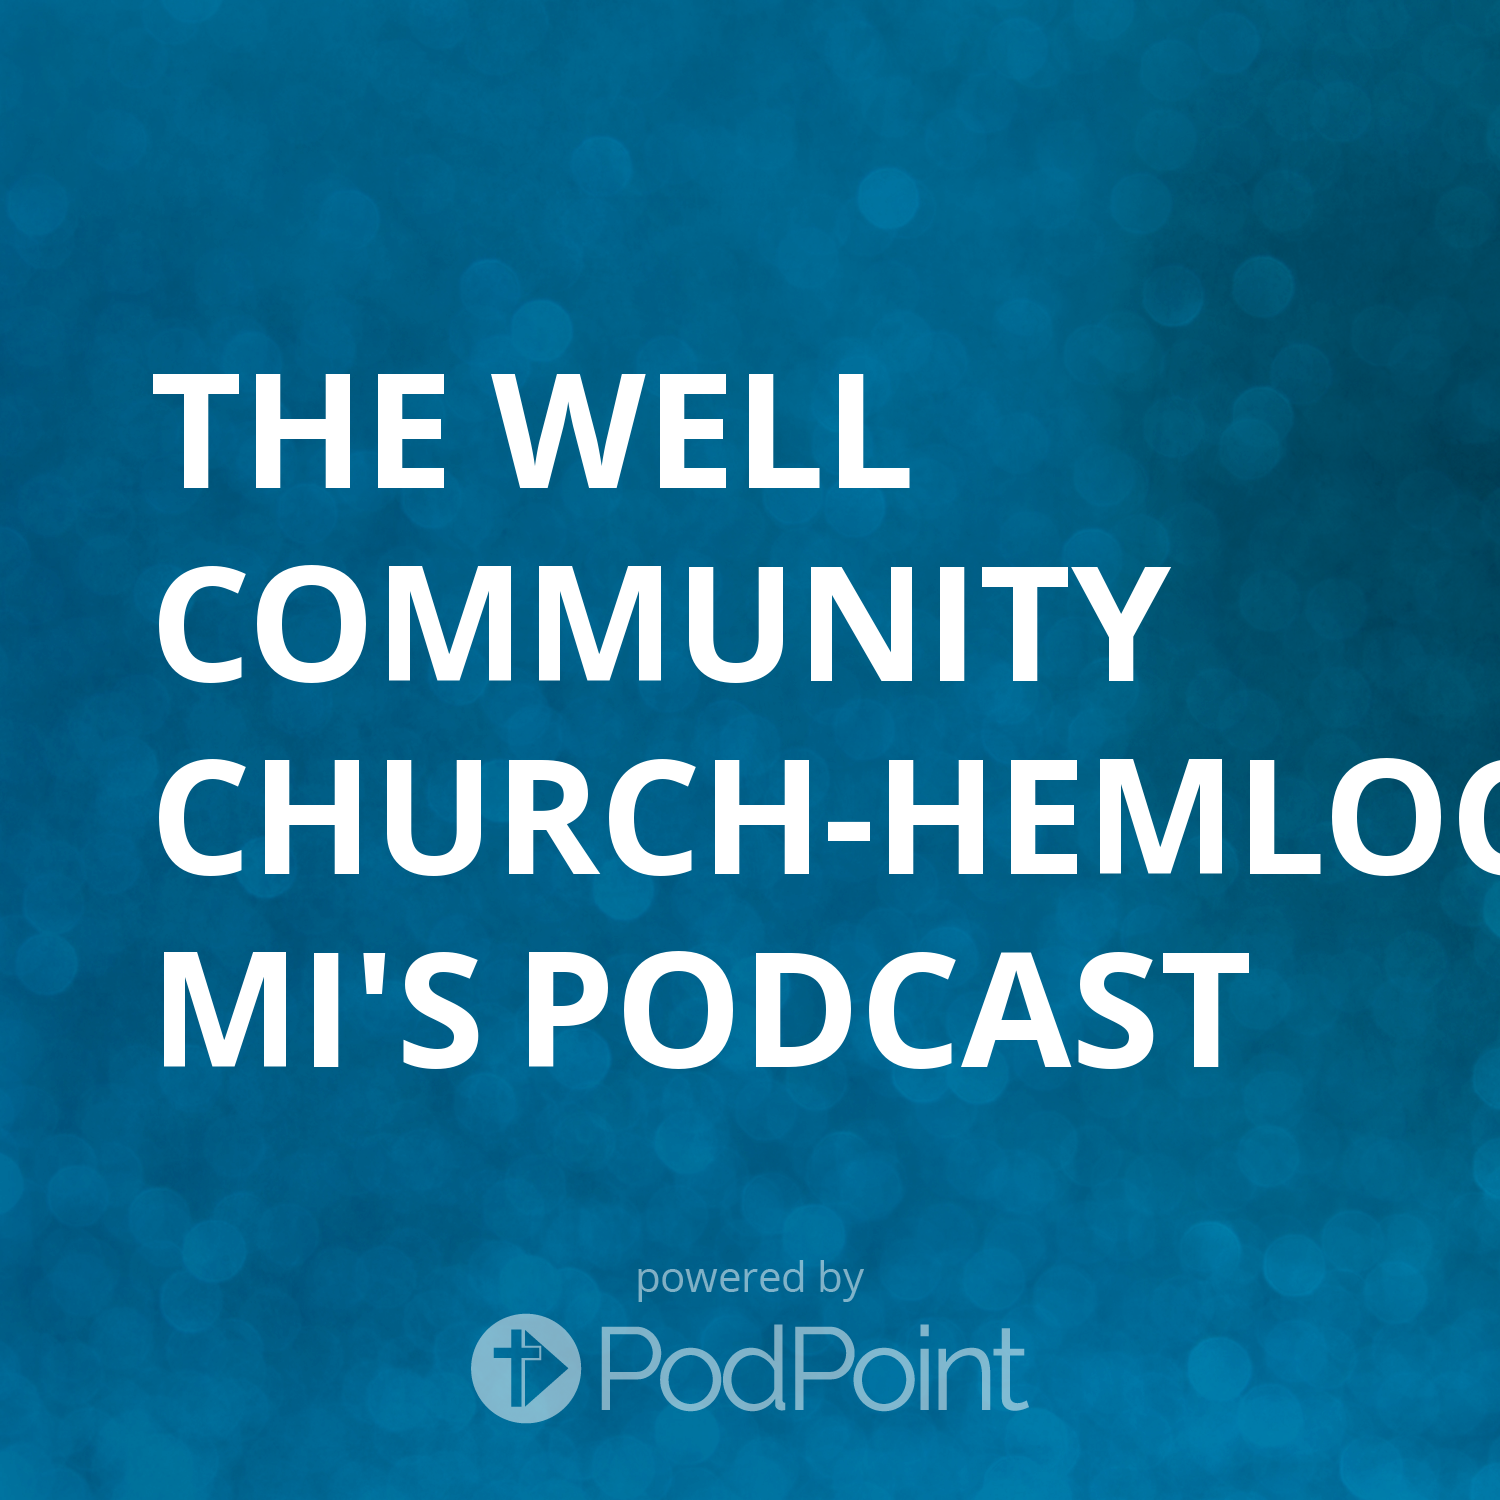 The Well Community Church-Hemlock, MI's Podcast